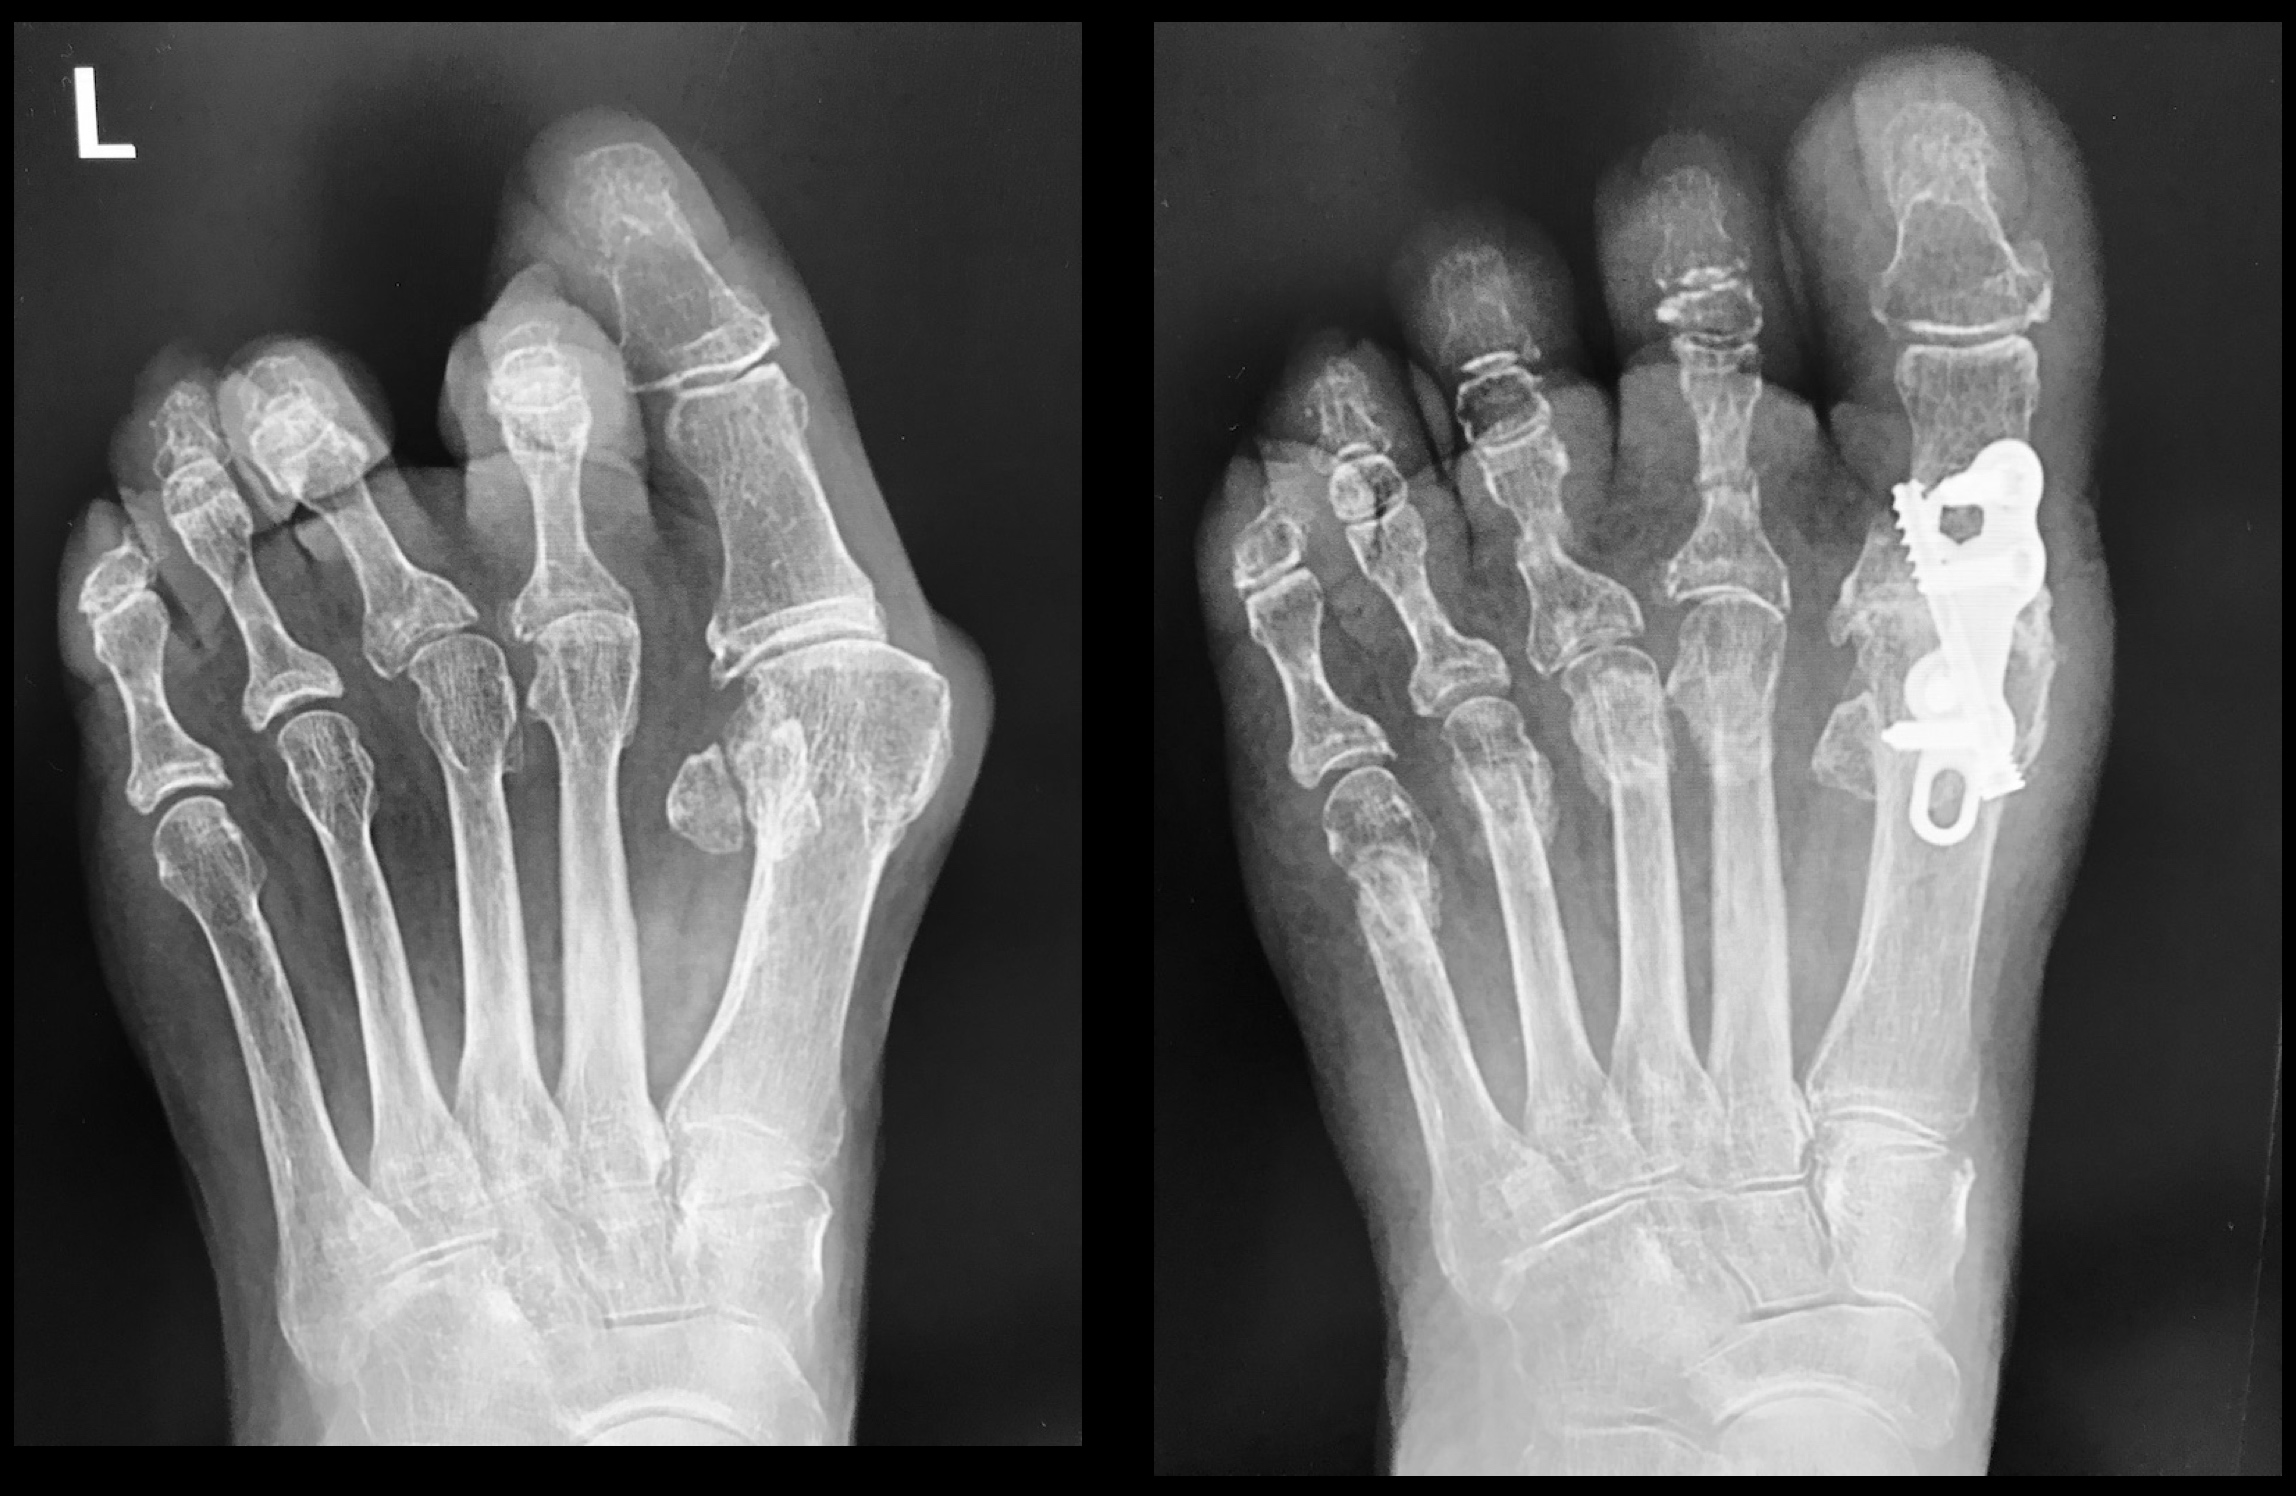 Big Toe Fusion surgery performed by Mr Redfern. The x-ray on the left was before surgery. The patient complained of painful hallux rigidus (arthritis), hallux valgus (bunion) and painful lesser toe deformities (2nd and 3rd toes) with metatarsalgia. The problems were solved with fusion of the big toe joint combined with state-of-the-art minimally invasive surgery to correct the lesser toes. Final x-ray on the right